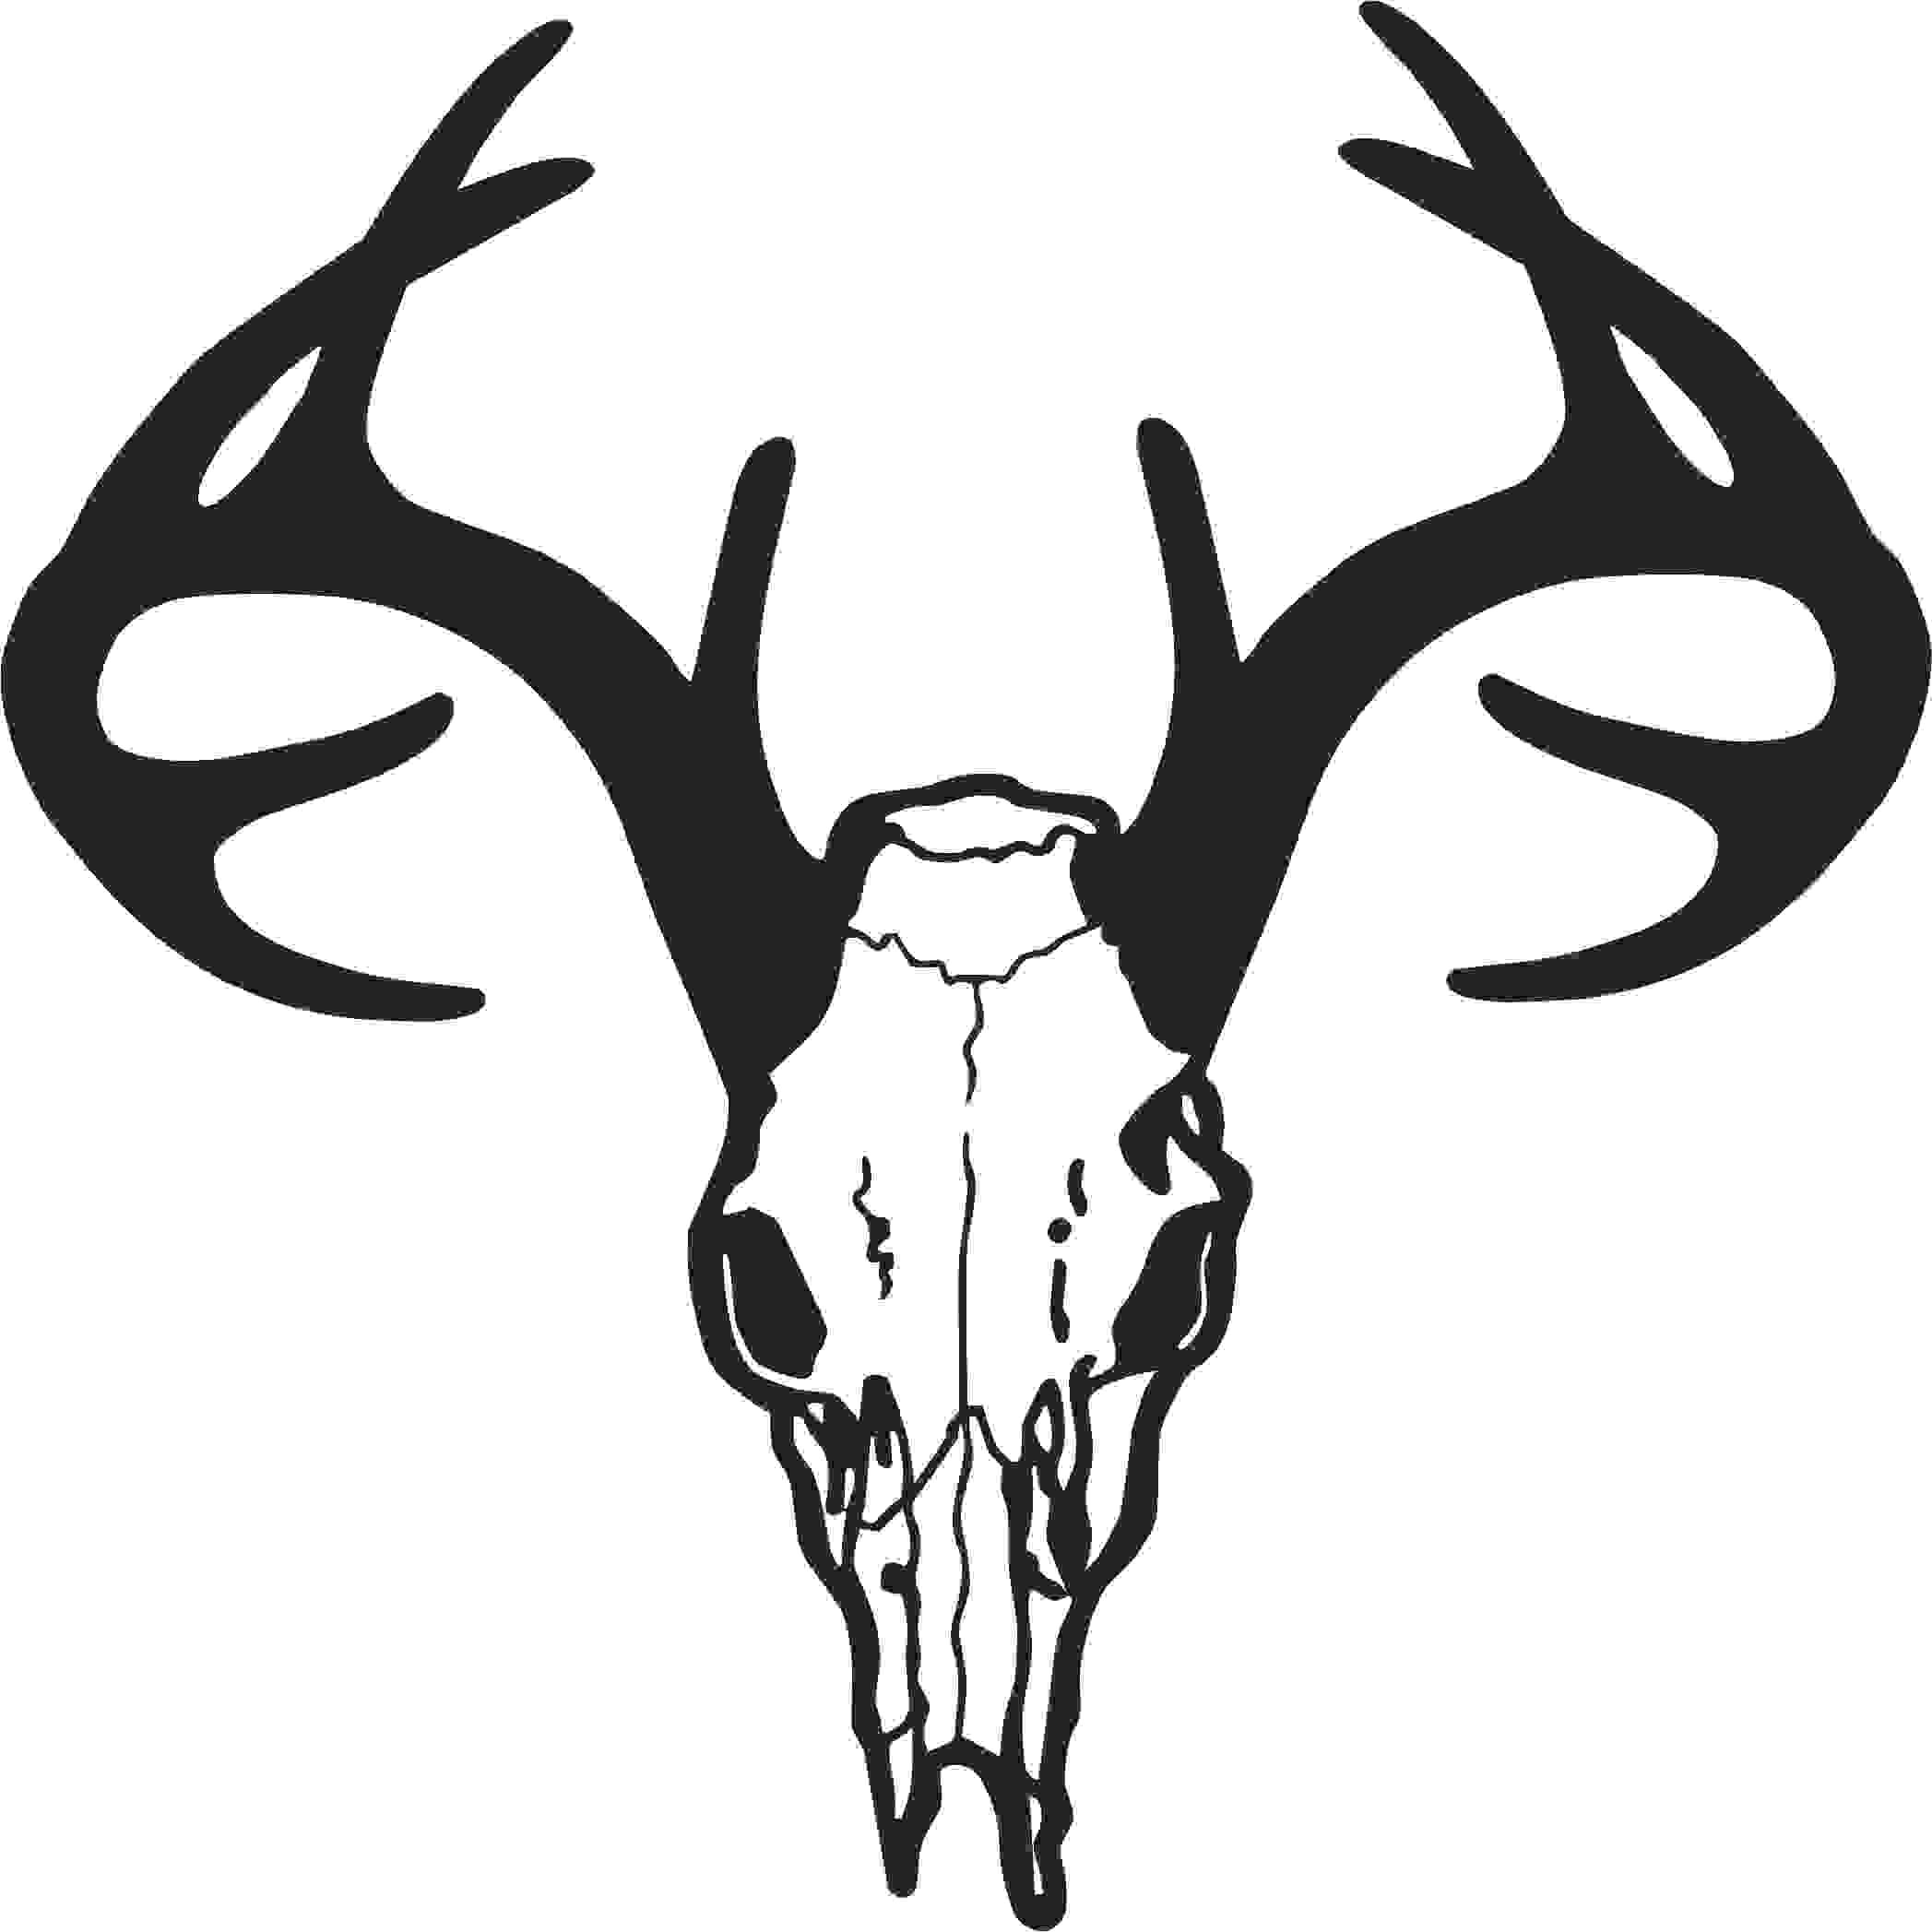 this is best deer skull clip art 14201 deer skull drawing free clipart images for your project or presentation to use for personal or commersial